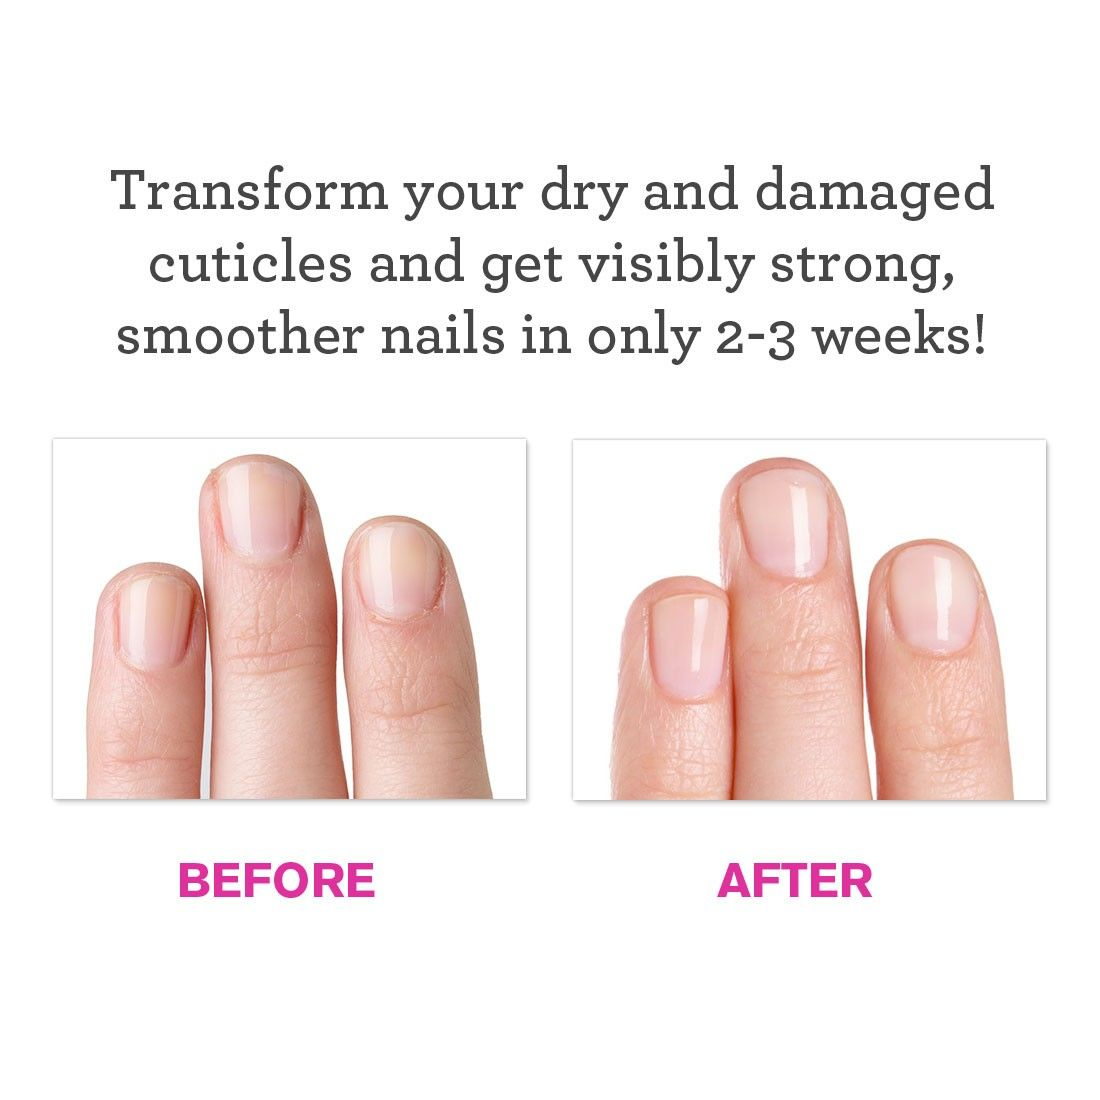 Think I might just try this | Useful hints | Pinterest | Feet care ...